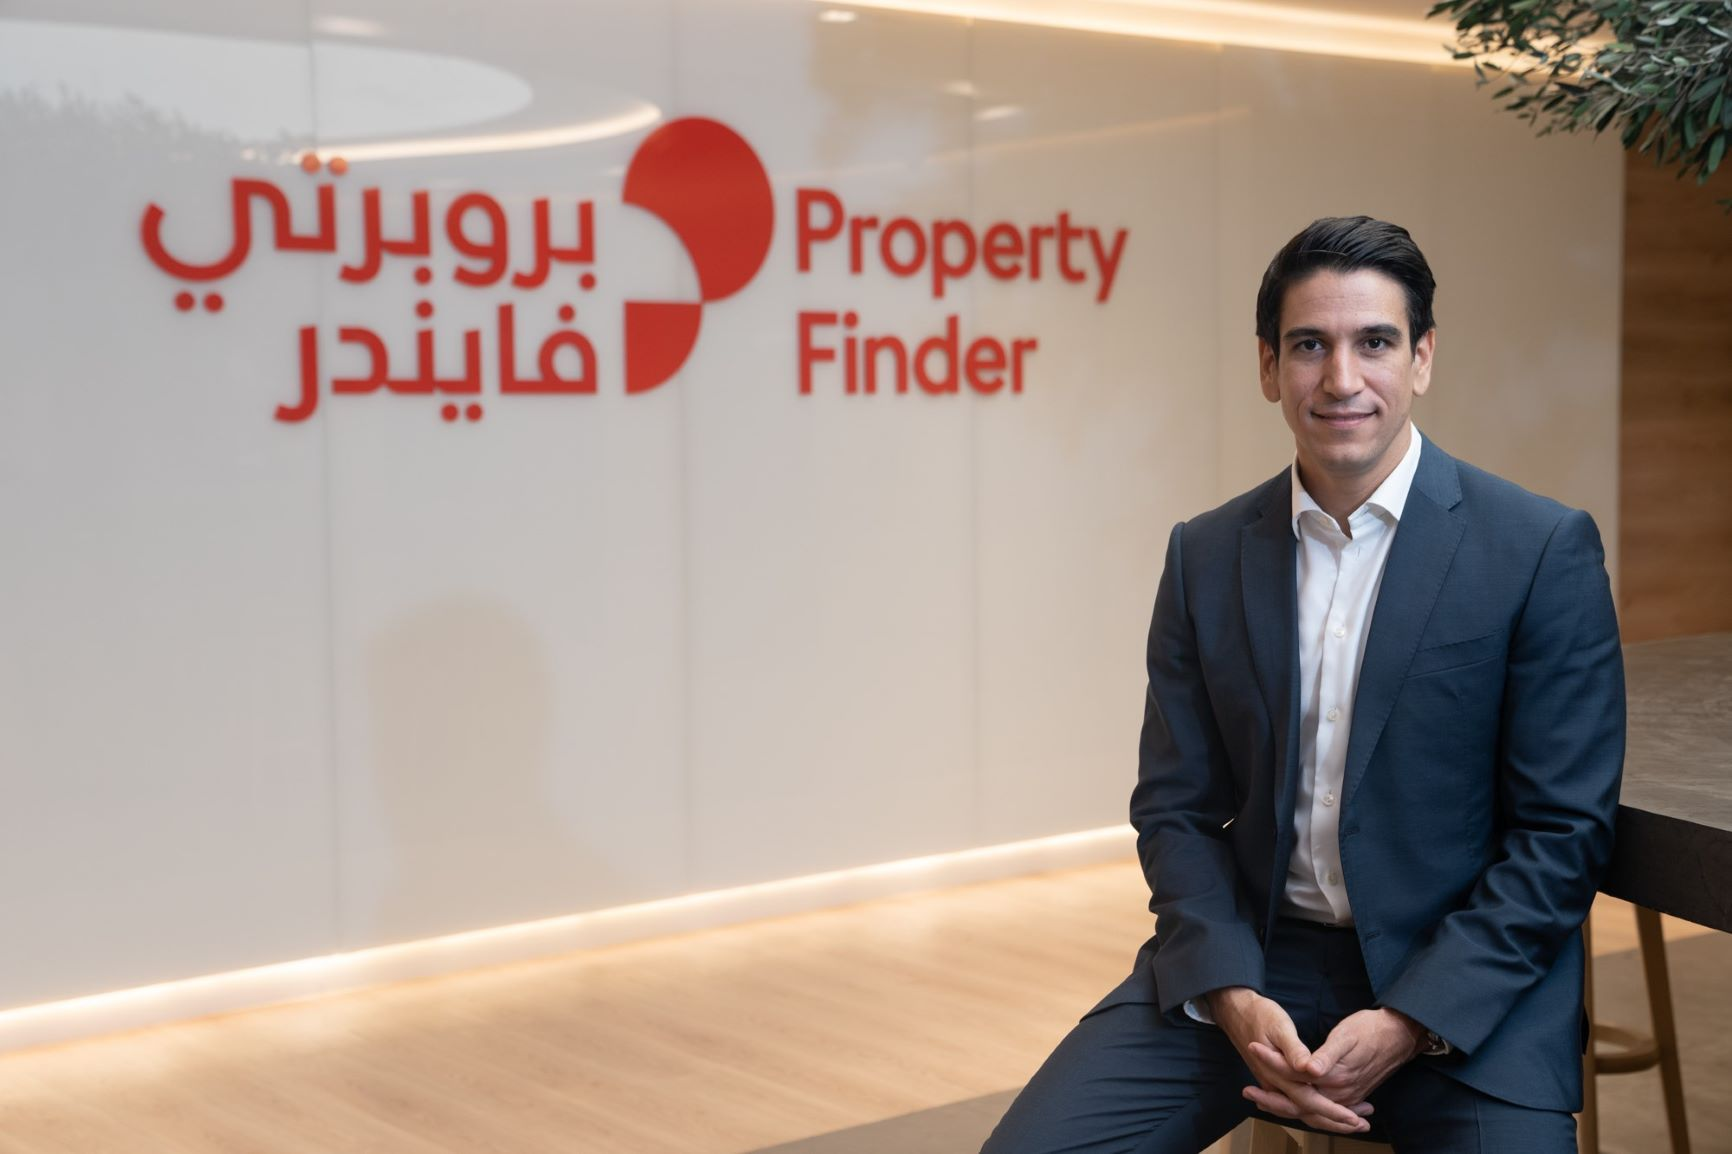 Property Finder raises $120 million